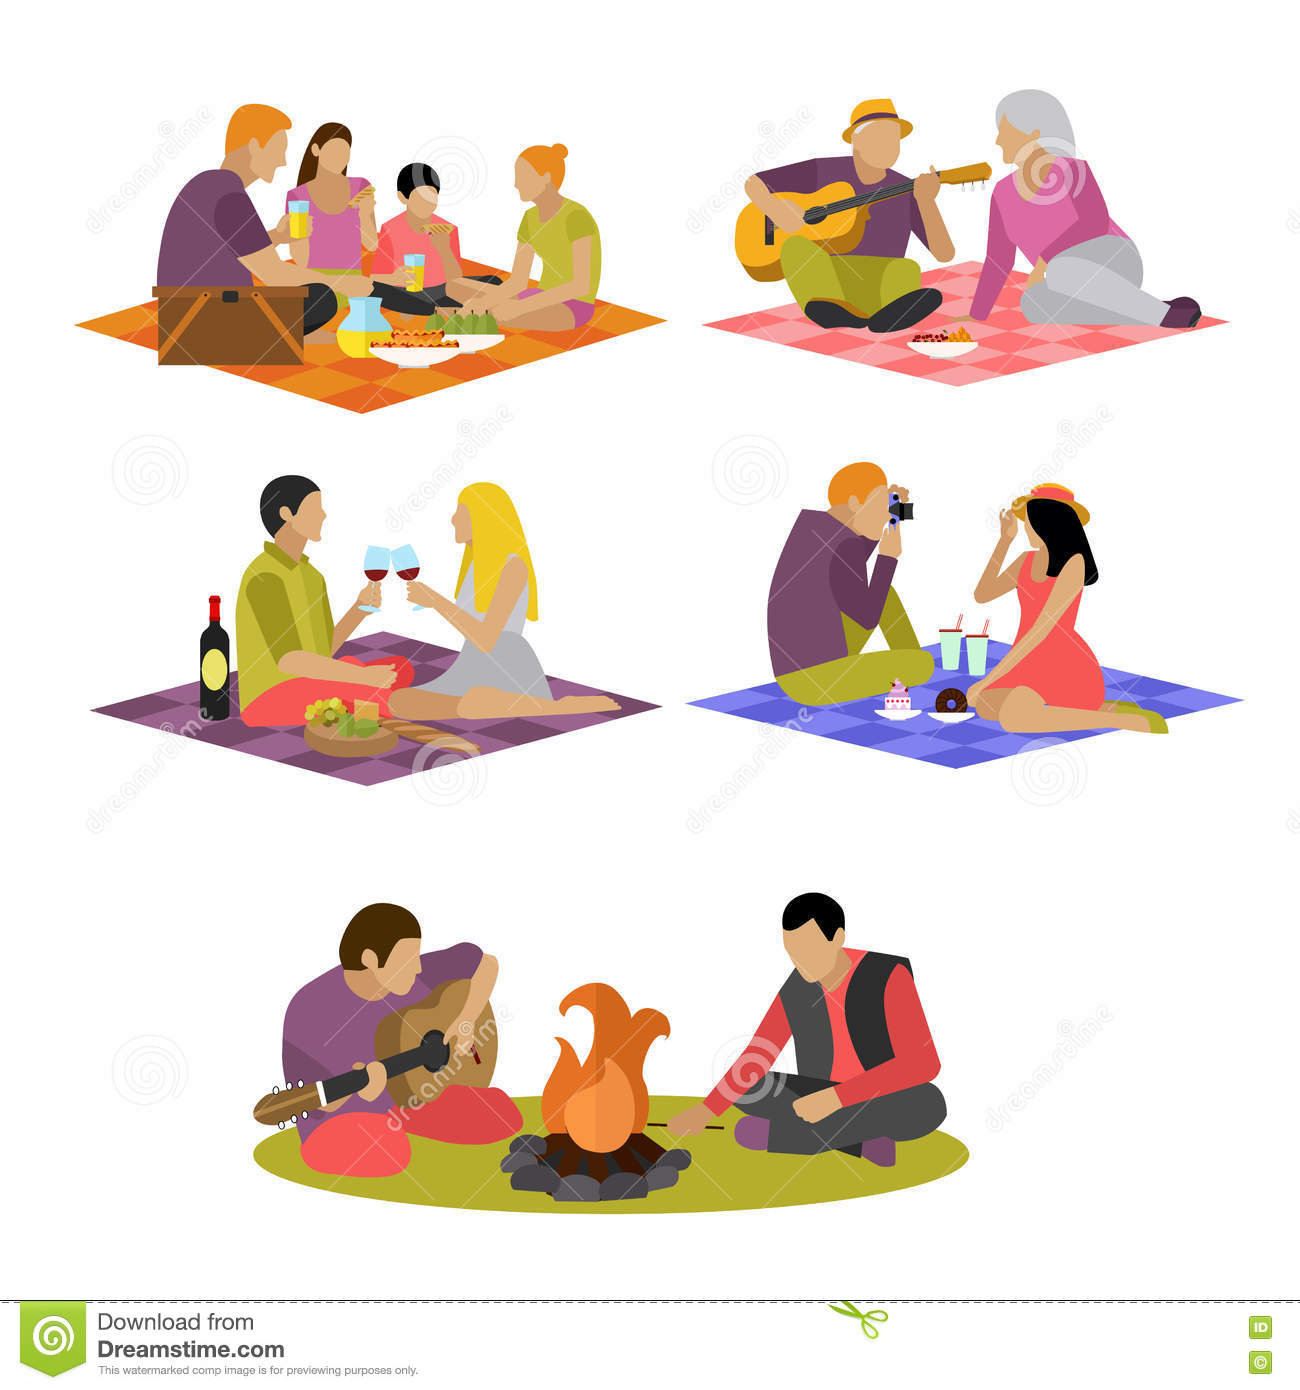 vector illustration of summer recreation family picnic free picnic clip art images free picnic clipart